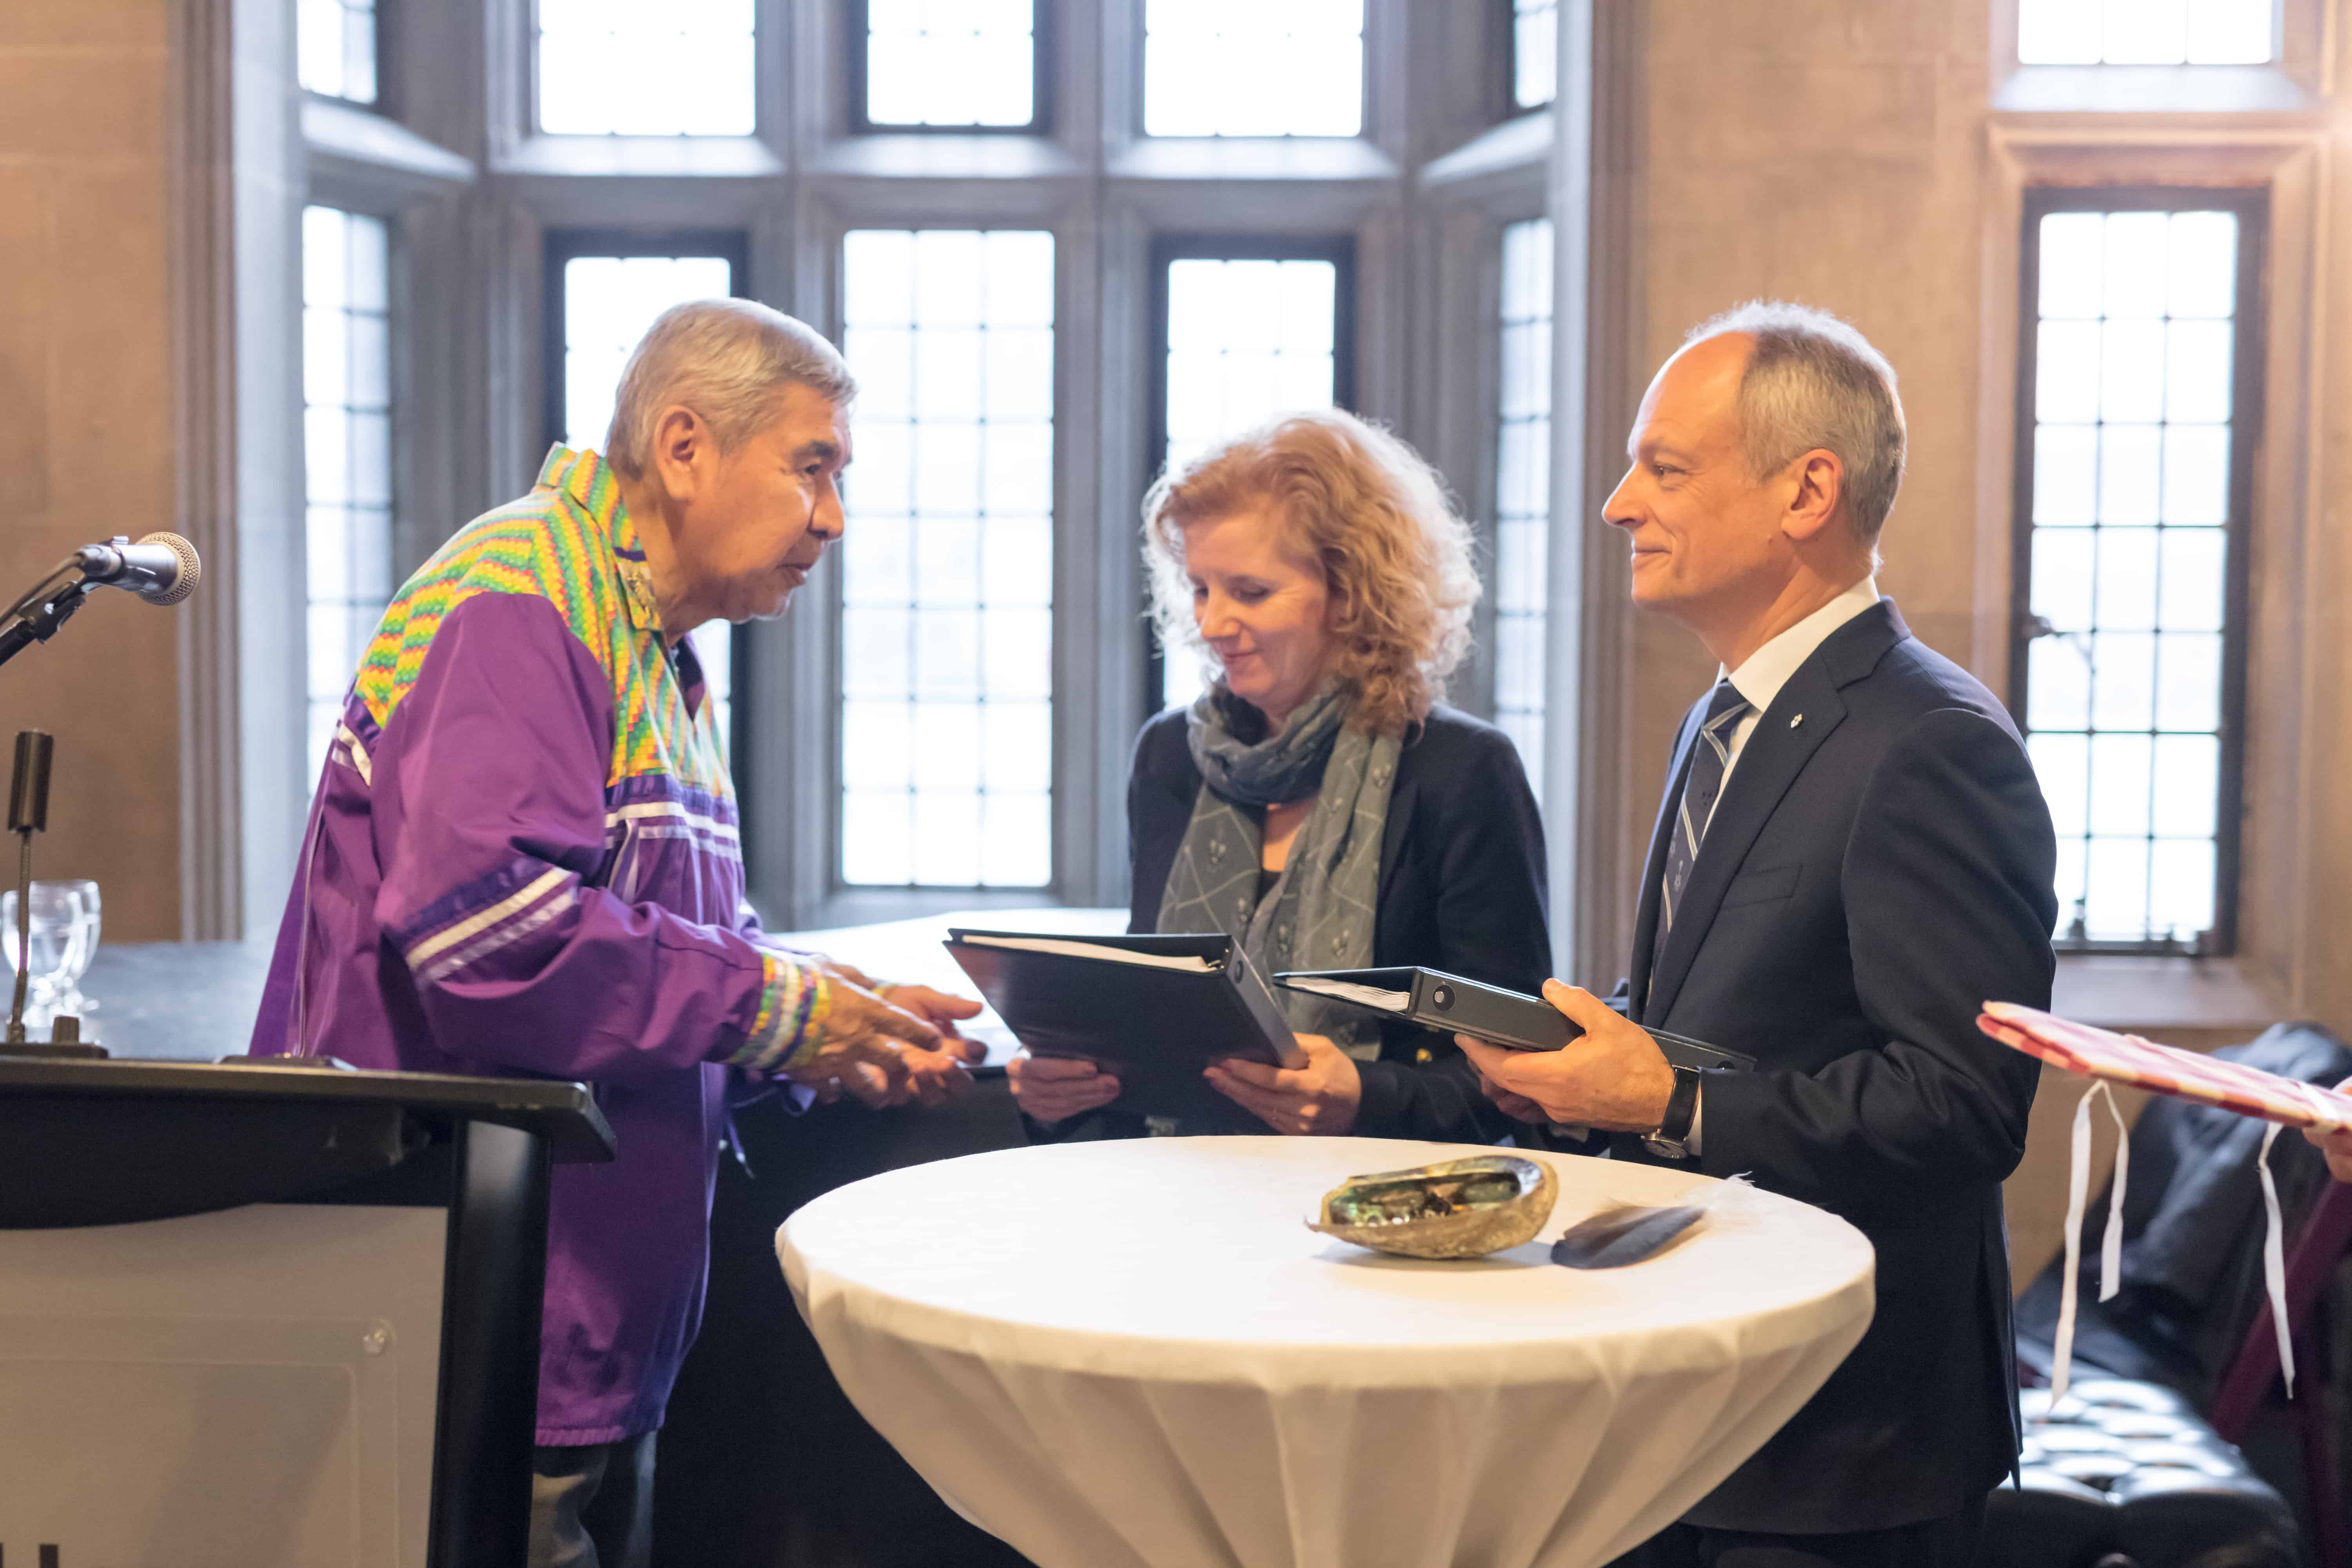 Elder Andrew Wesley gives Provost Cheryl Regehr and President Meric Gertler the TRC report in January 2017.